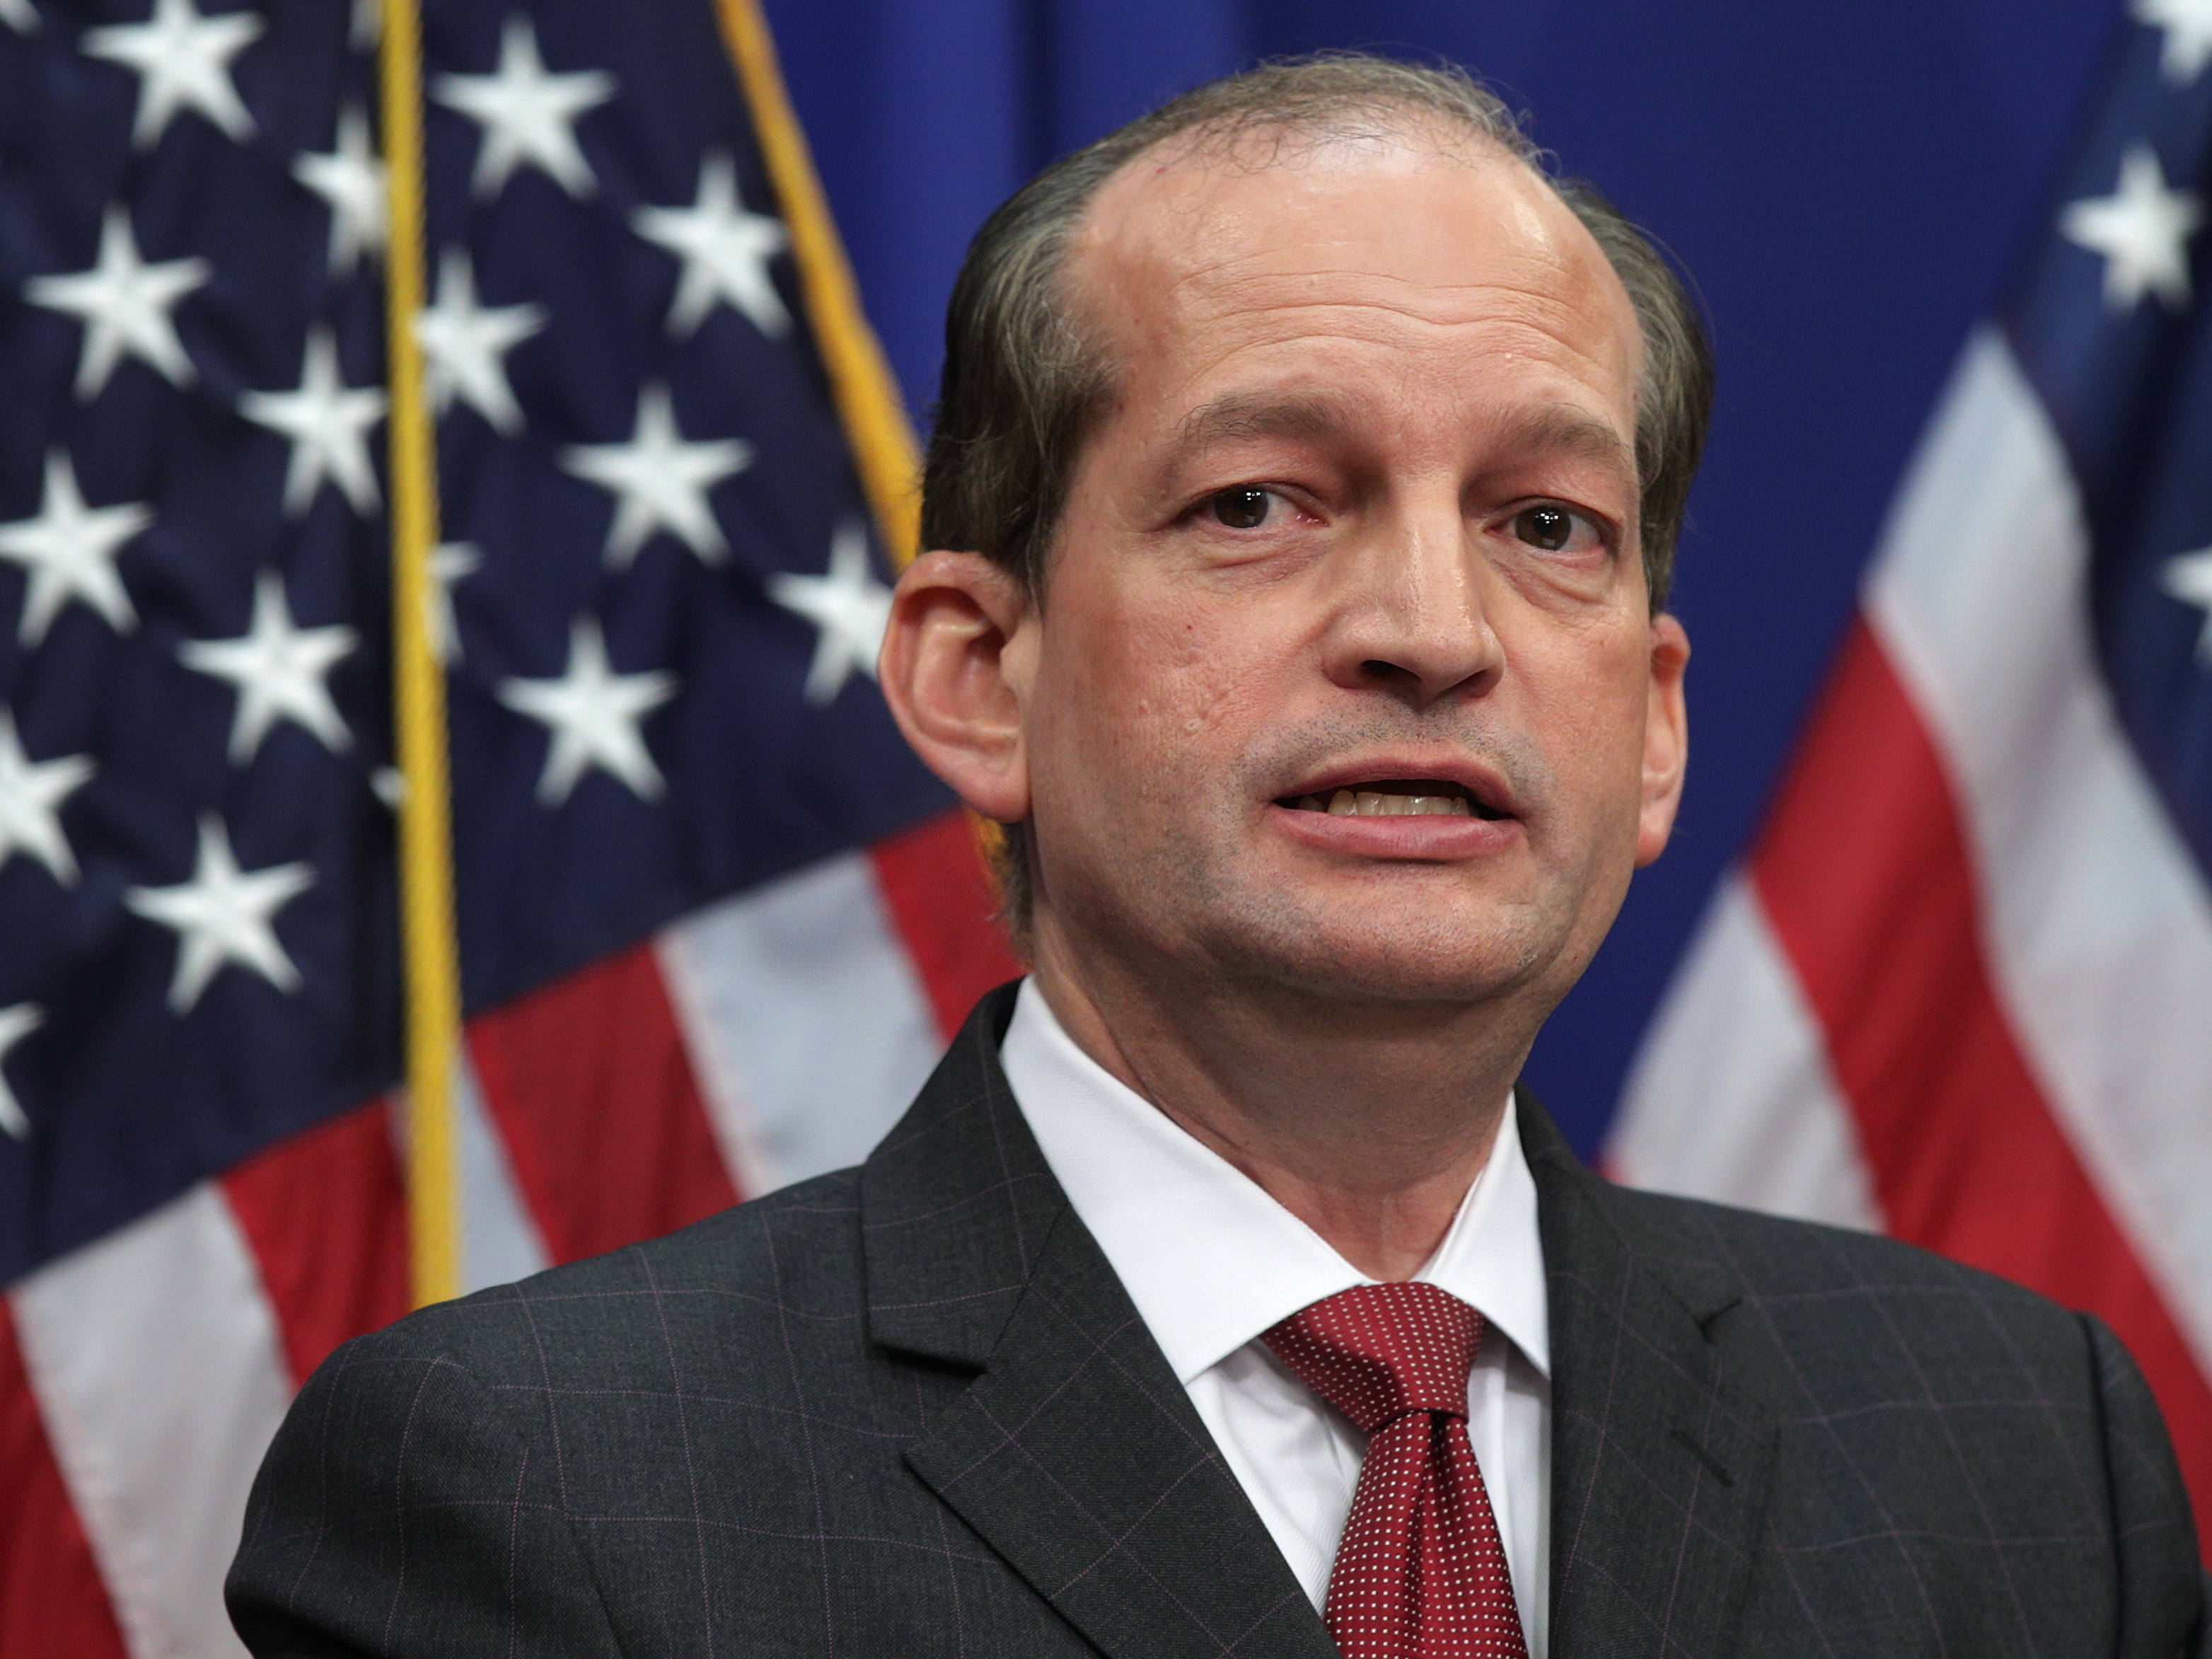 Labor Secretary Alex Acosta on Wednesday defended a 2008 plea deal made with Jeffrey Epstein, a wealthy financier accused of yearslong sex trafficking of minors. The deal was made when Acosta was a U.S. attorney in Florida.